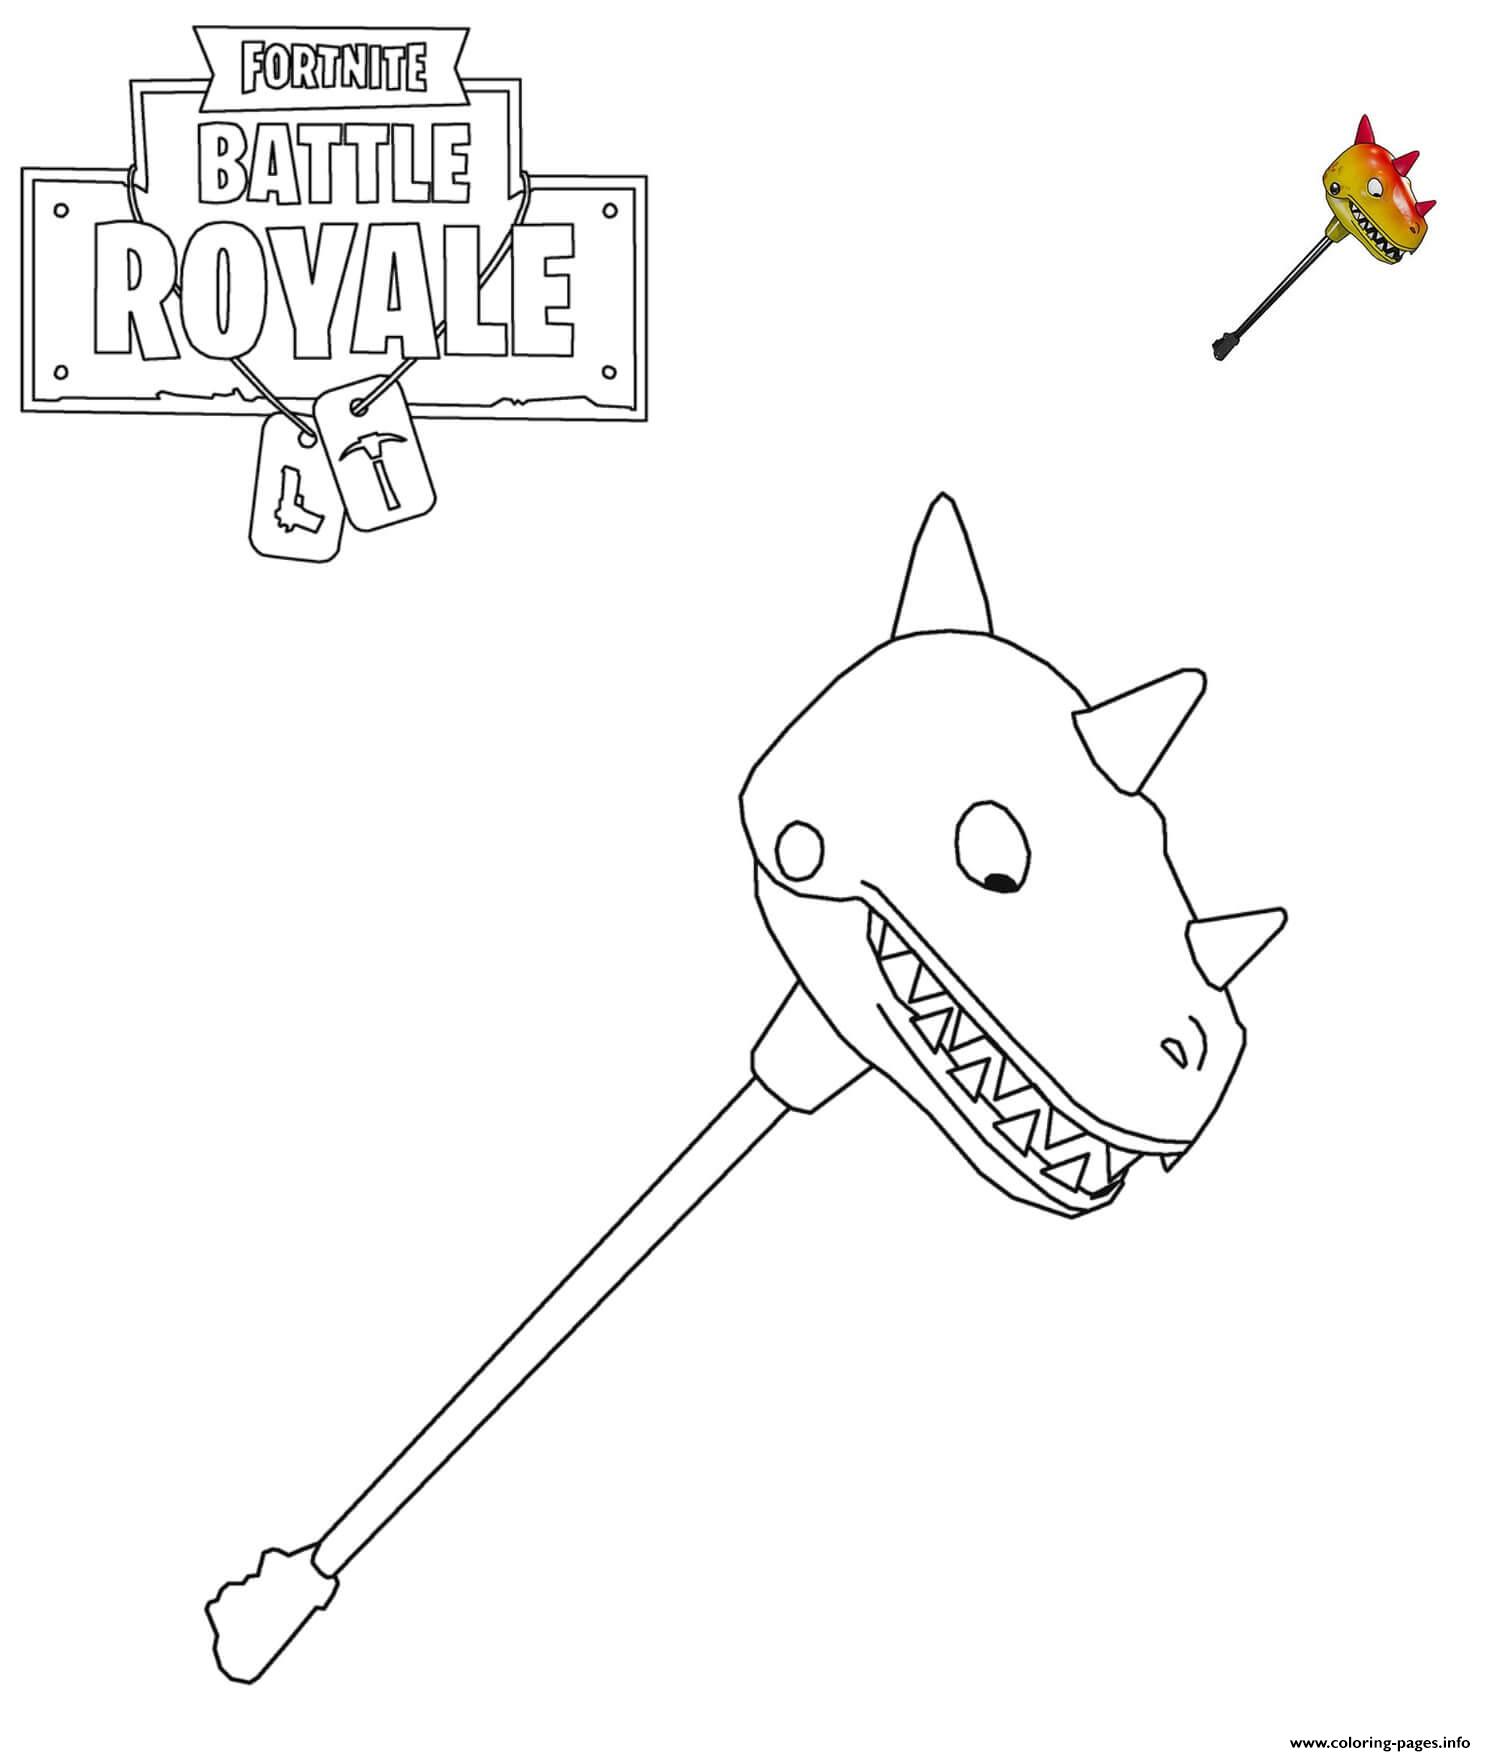 Bitemark Fortnite Item Coloring Pages Printable